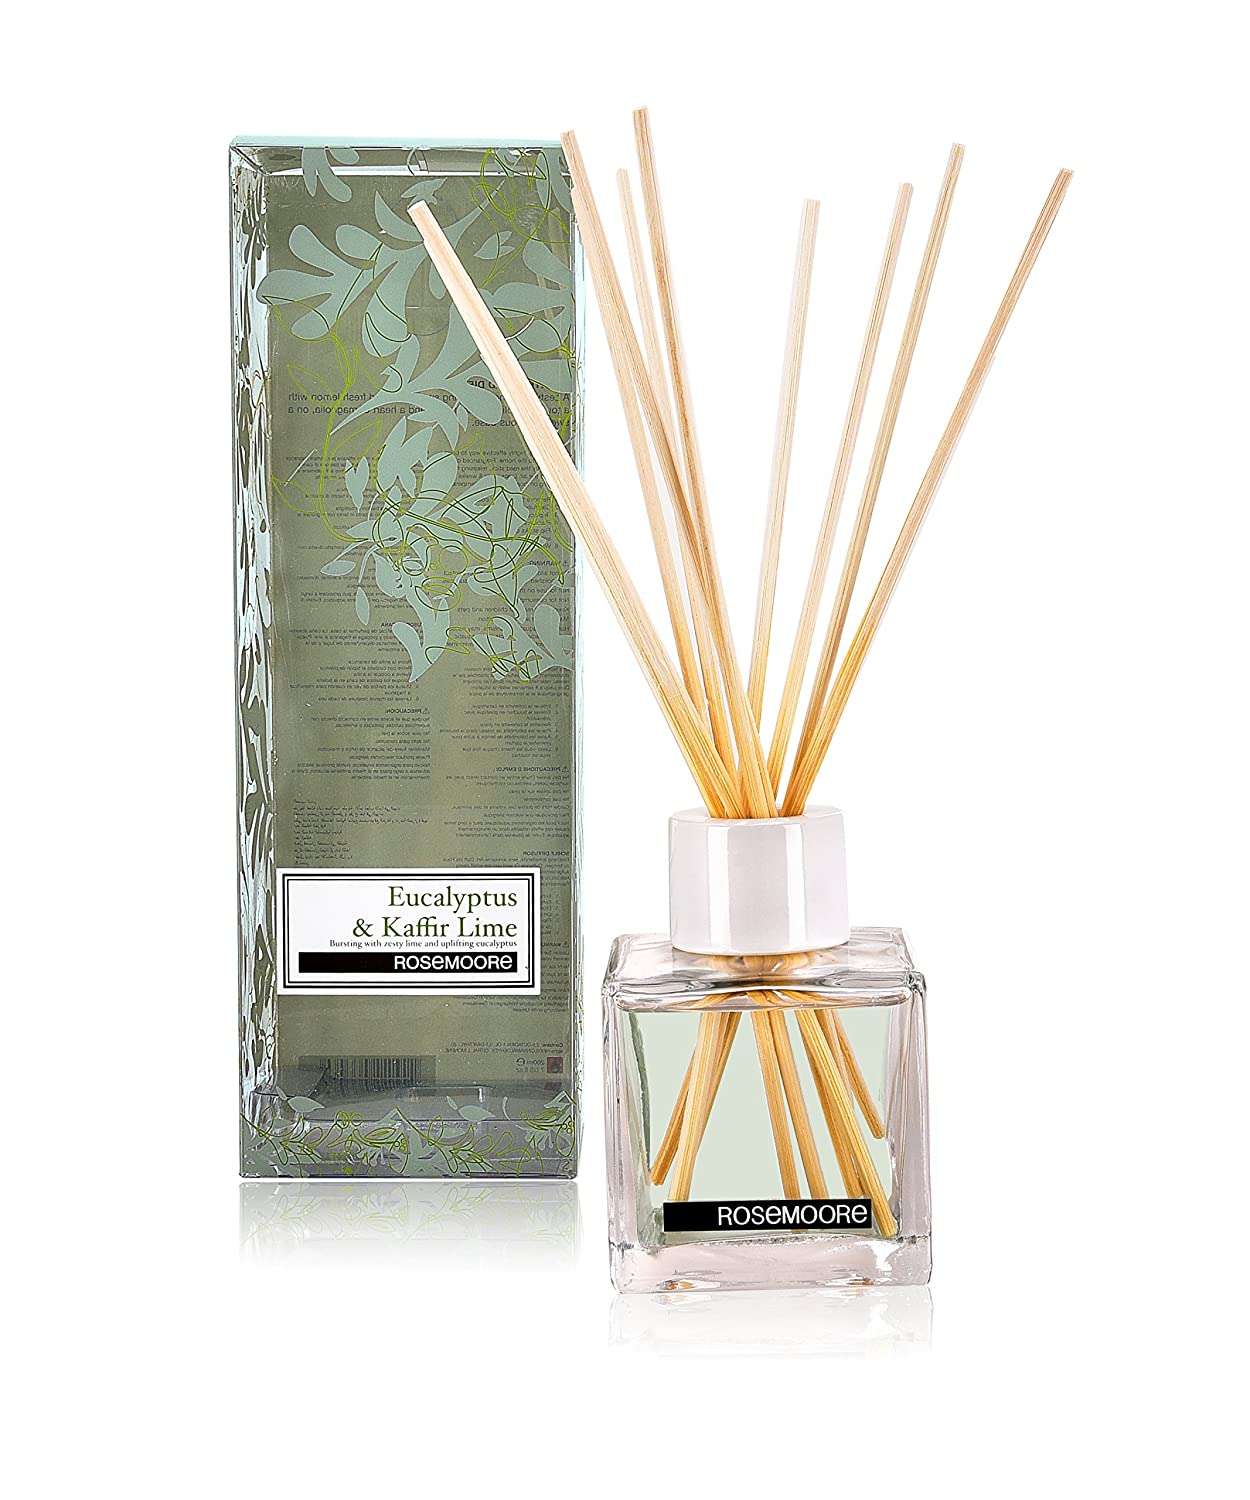 Rosemoore Green Eucalyptus & Kaffir Lime Scented Reed Diffuser For Living Room, Washroom, Bedroom, Office - 200 ml With 10 Reed Sticks